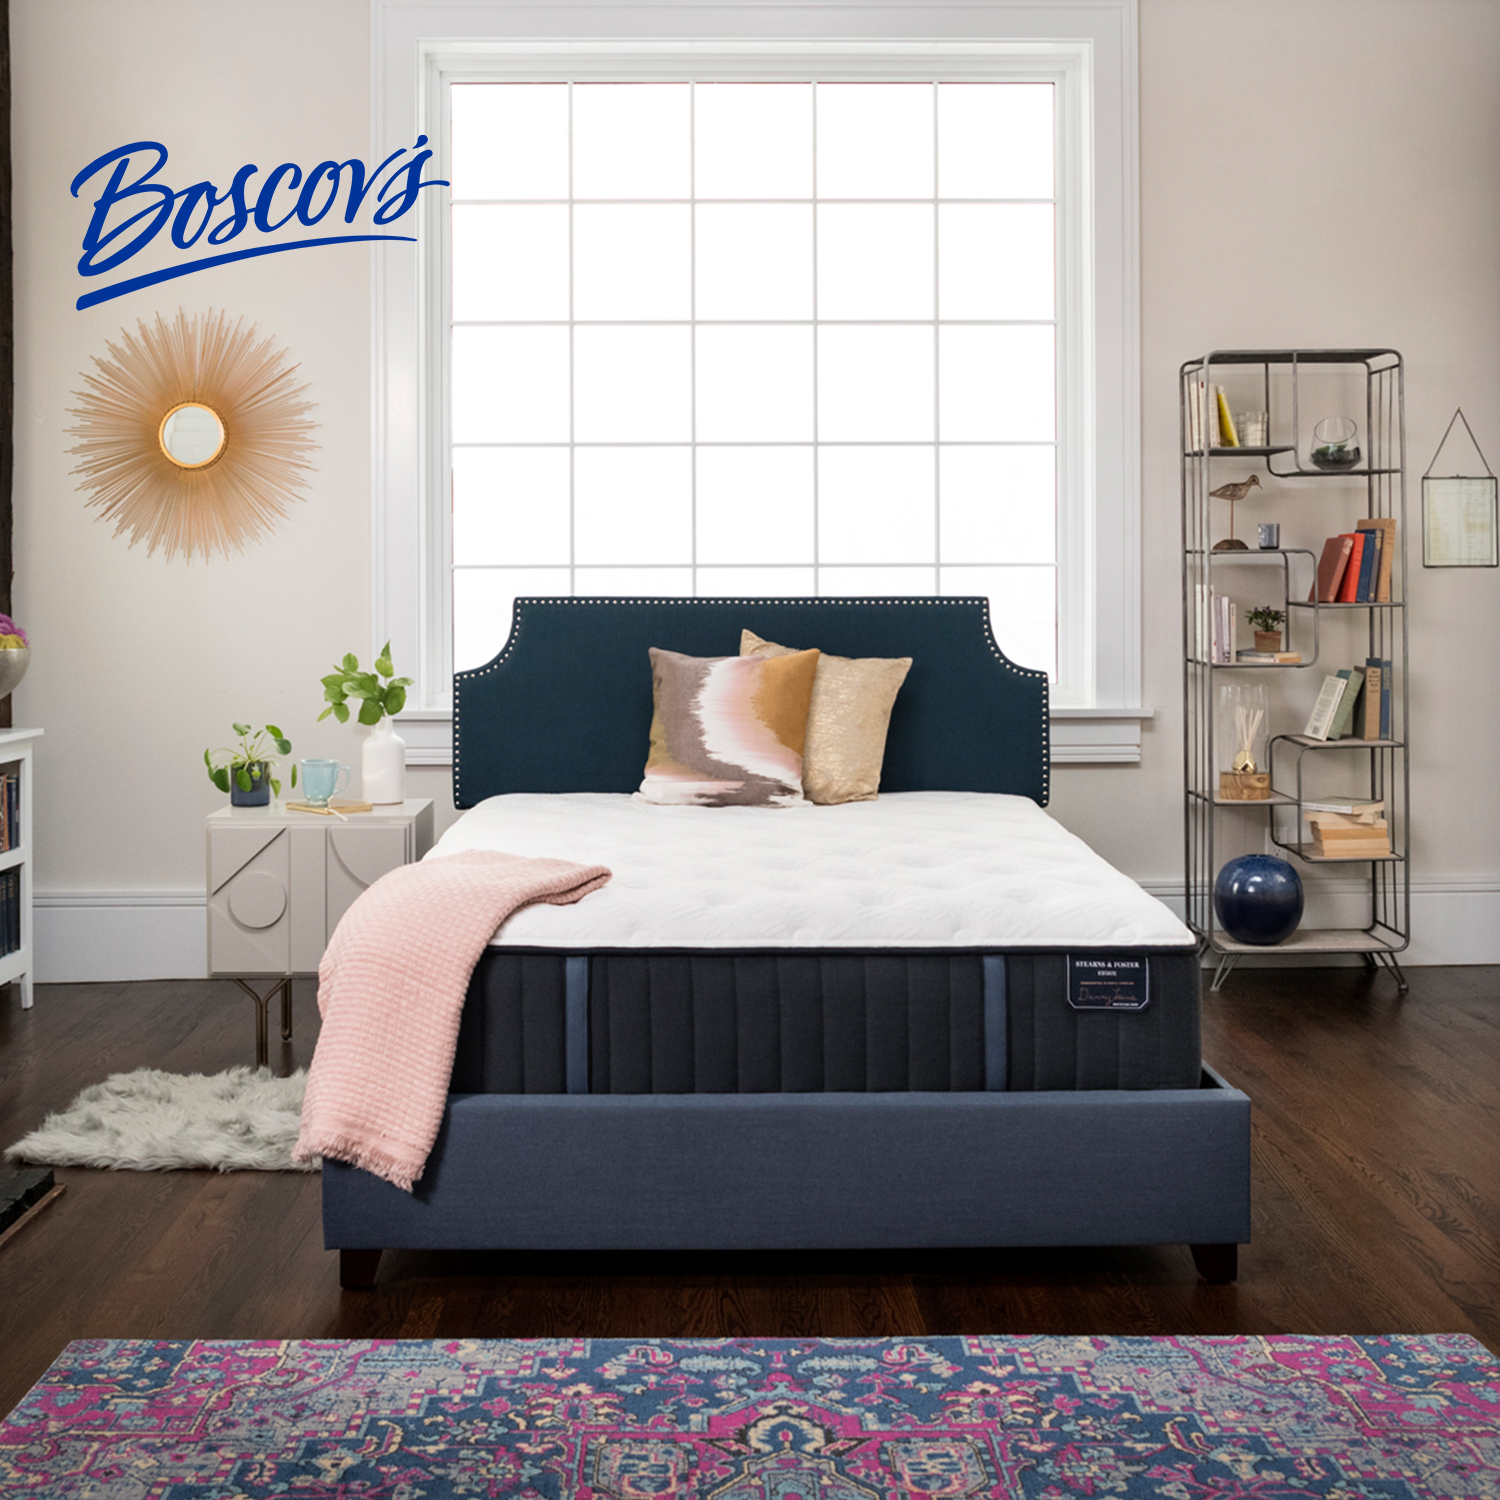 A bedroom with a new bed and white linen